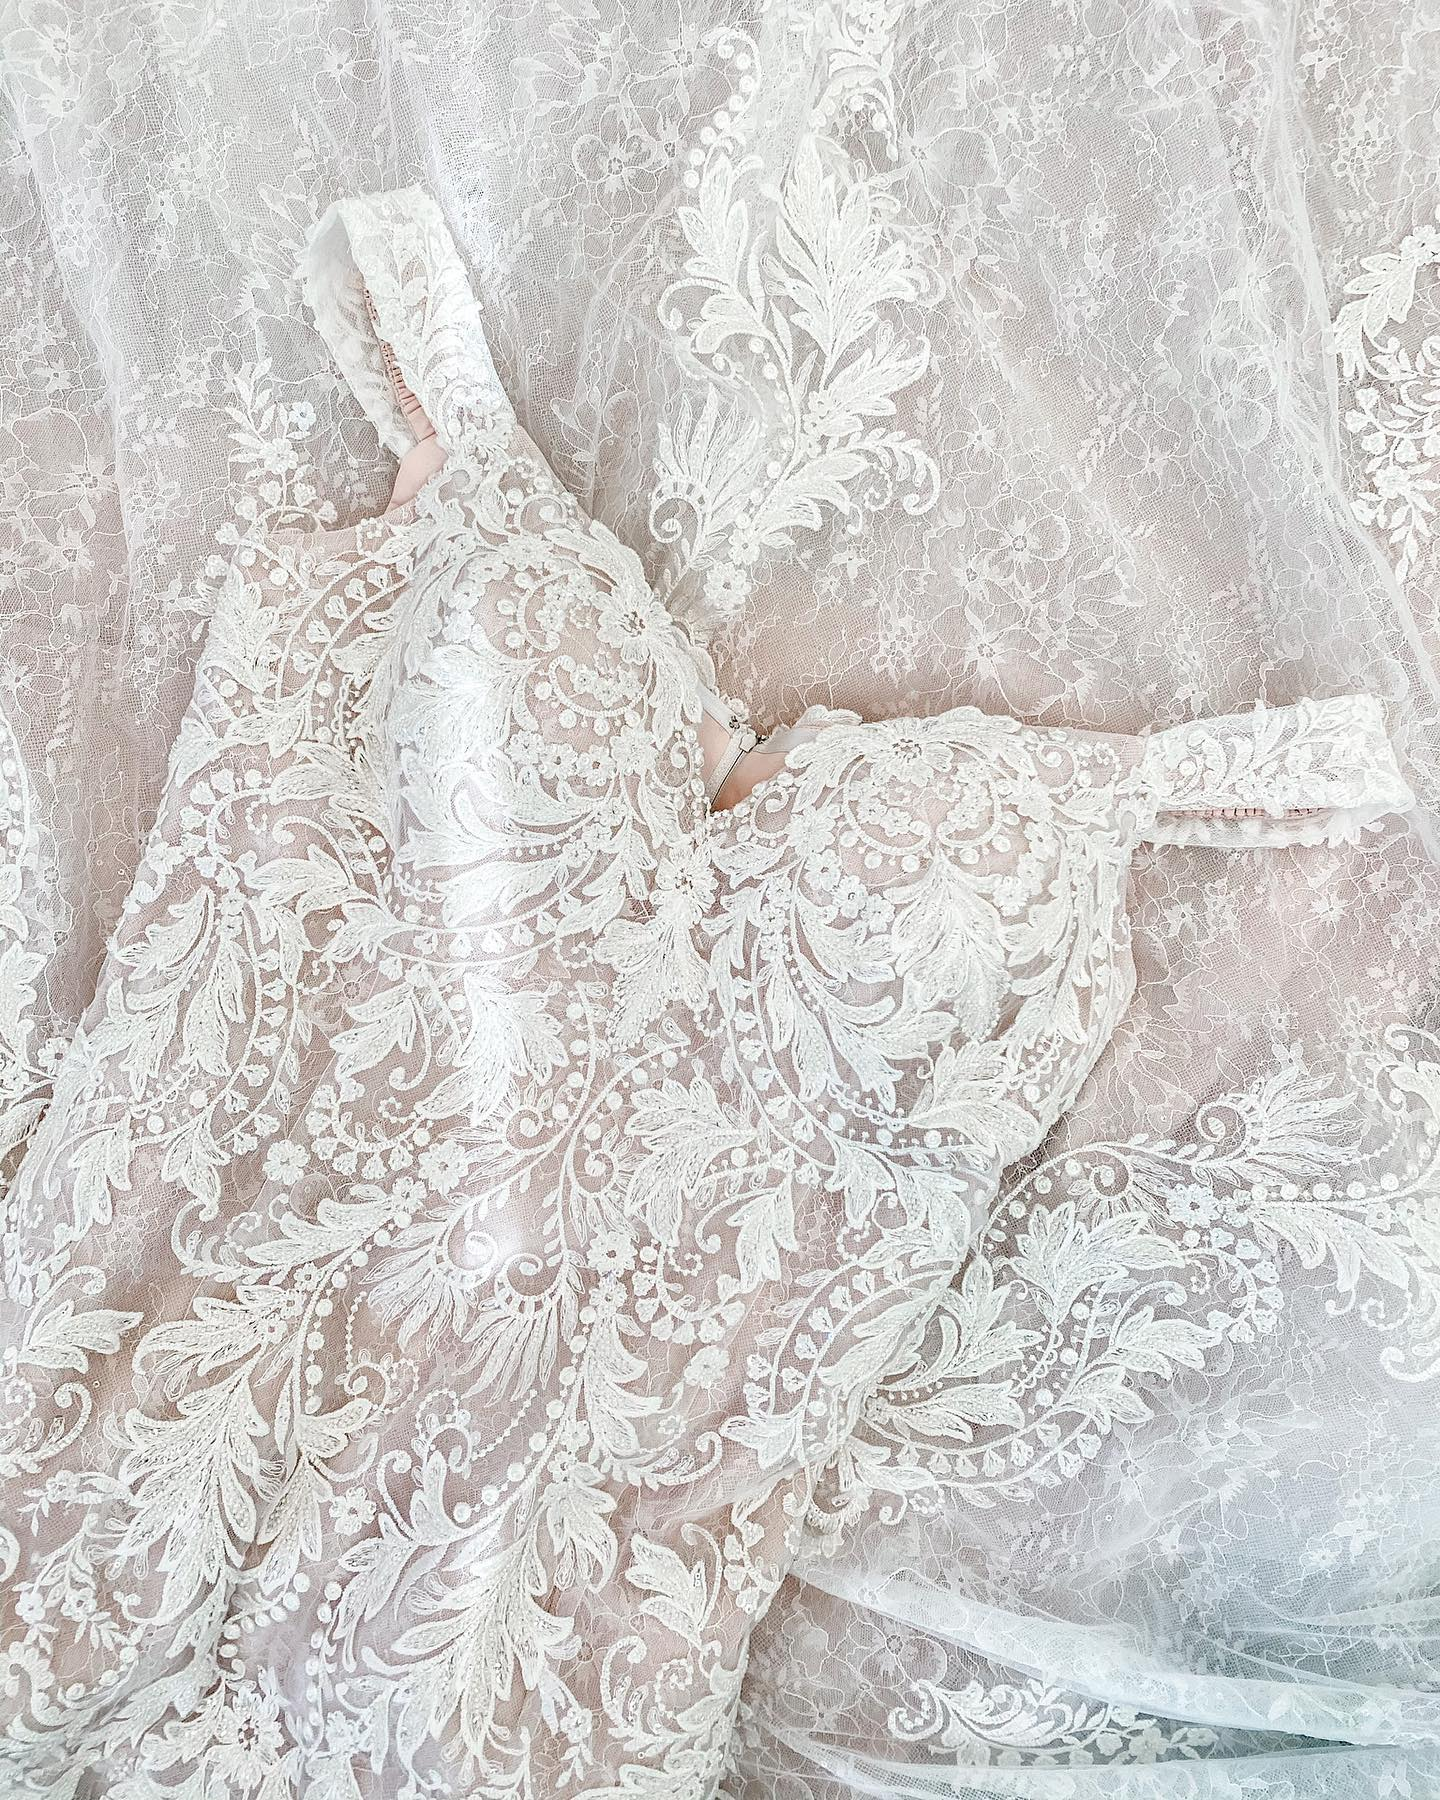 The 2021 Wedding Dress Season is Here! Get Ready With These 6 Tips